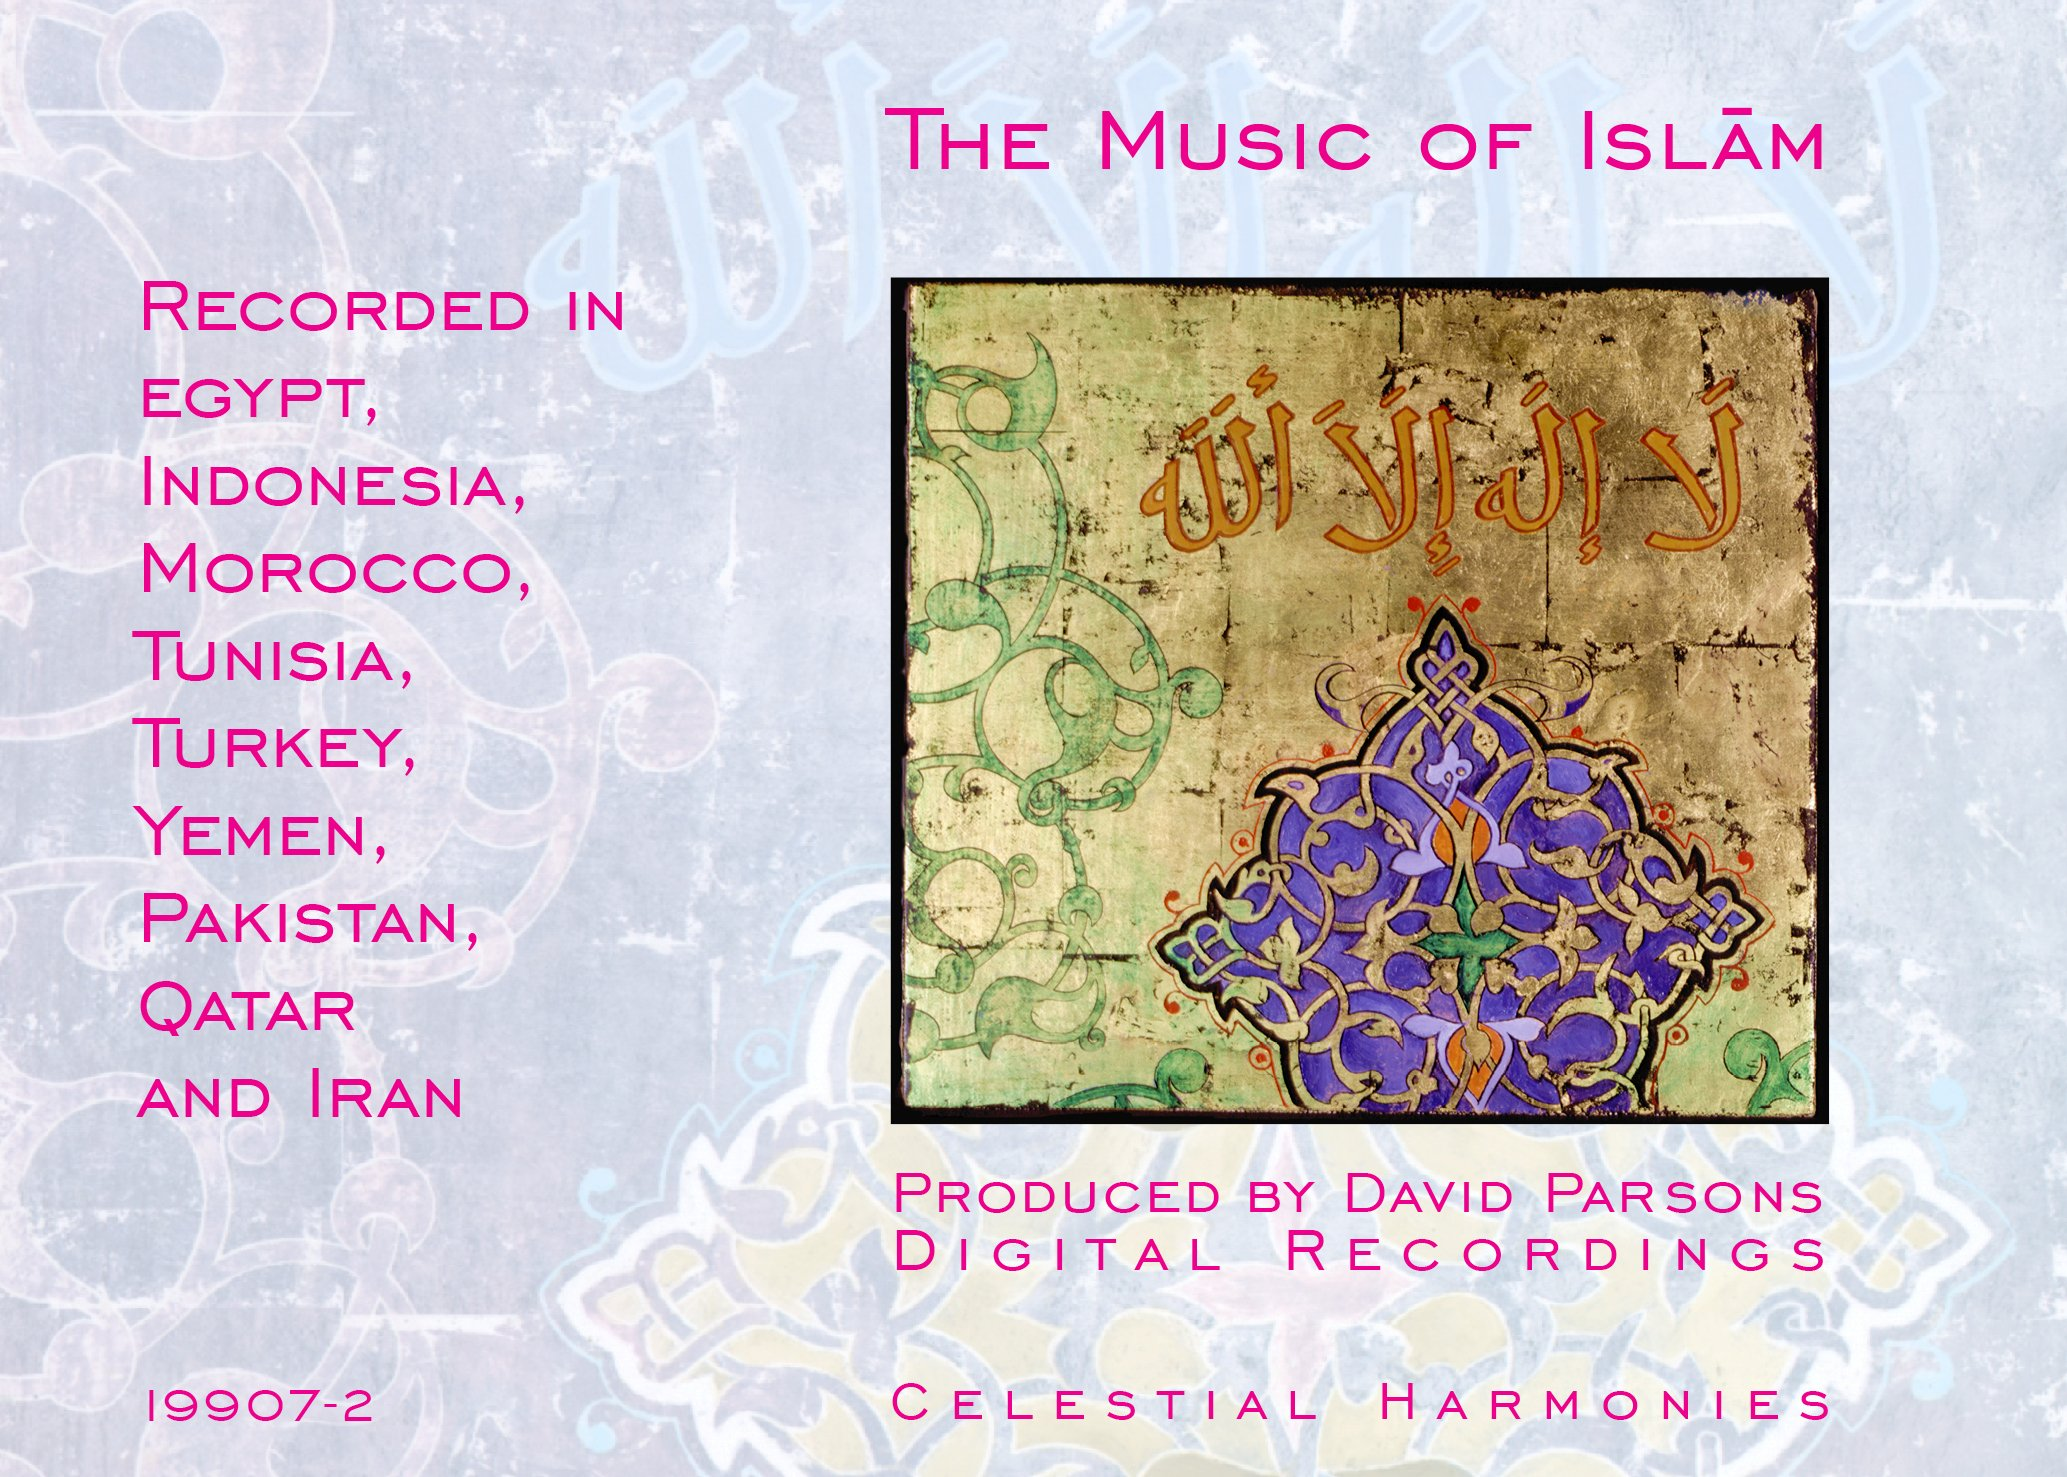 The Music of Islam by Celestial Harmonies